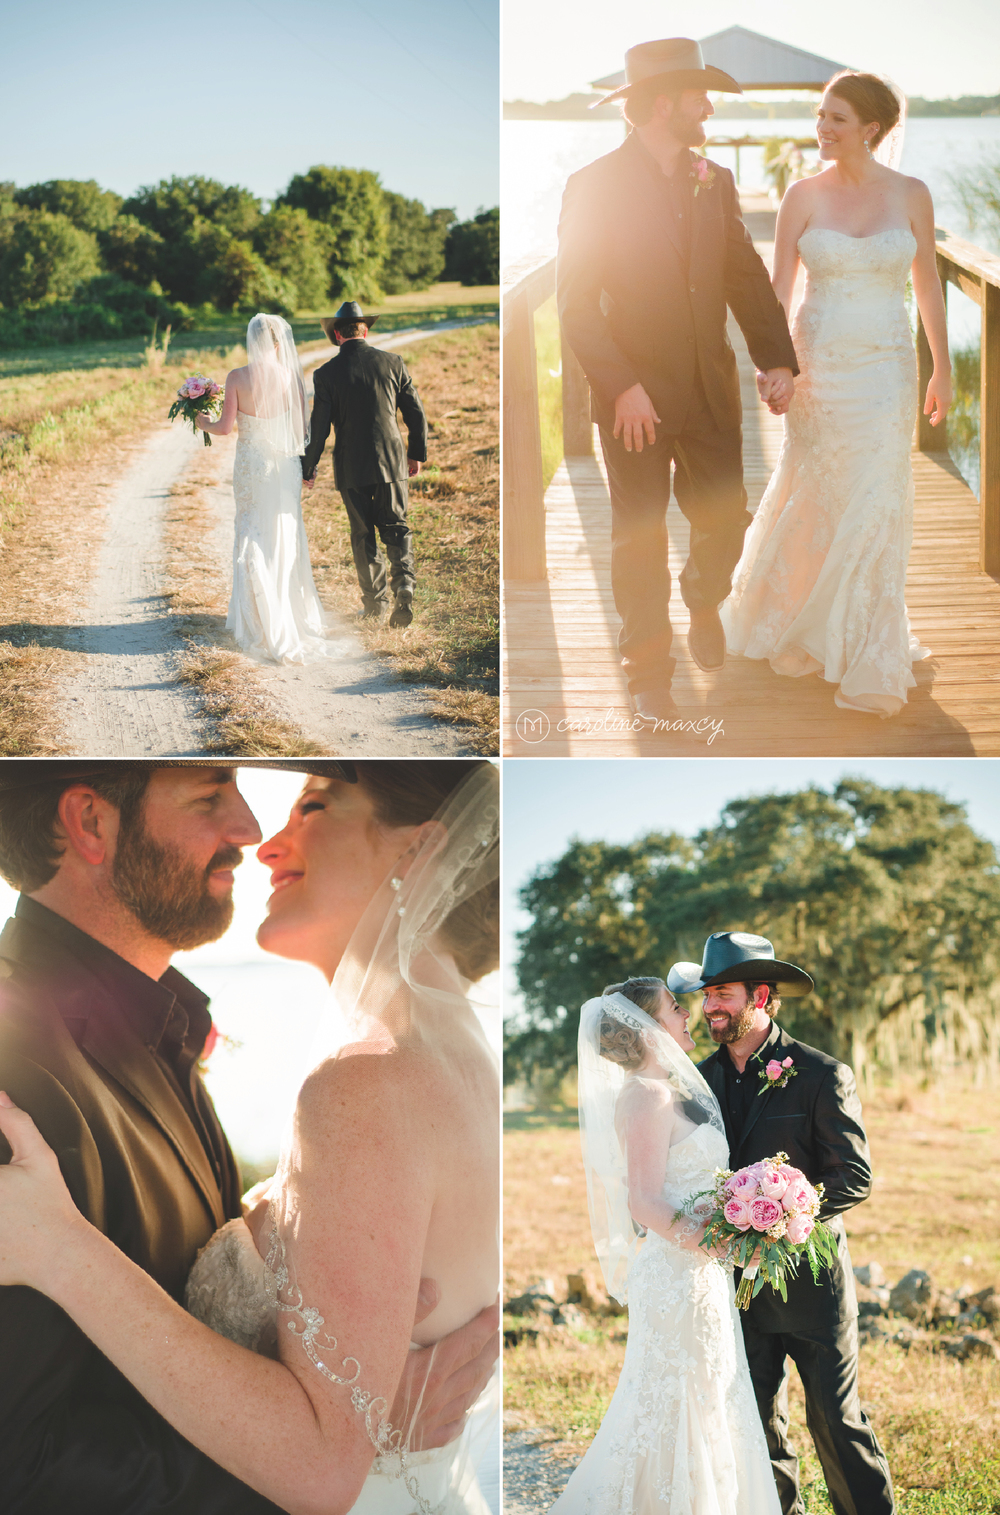 Jamie and Cory's lakeside wedding in Avon Park, FL with Caroline Maxcy Photography